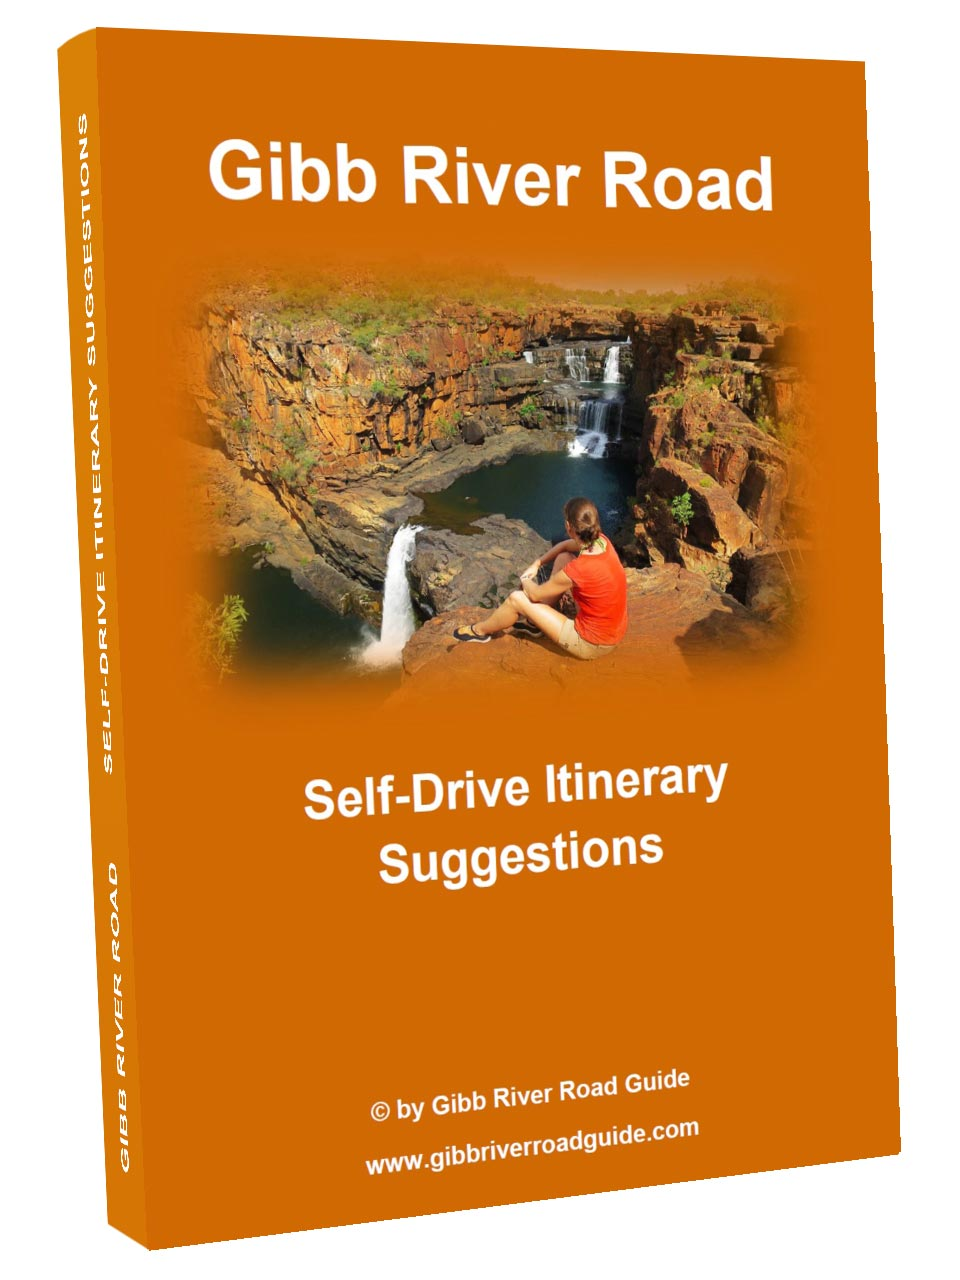 Gibb River Road - Self-Drive Itinerary Suggestions